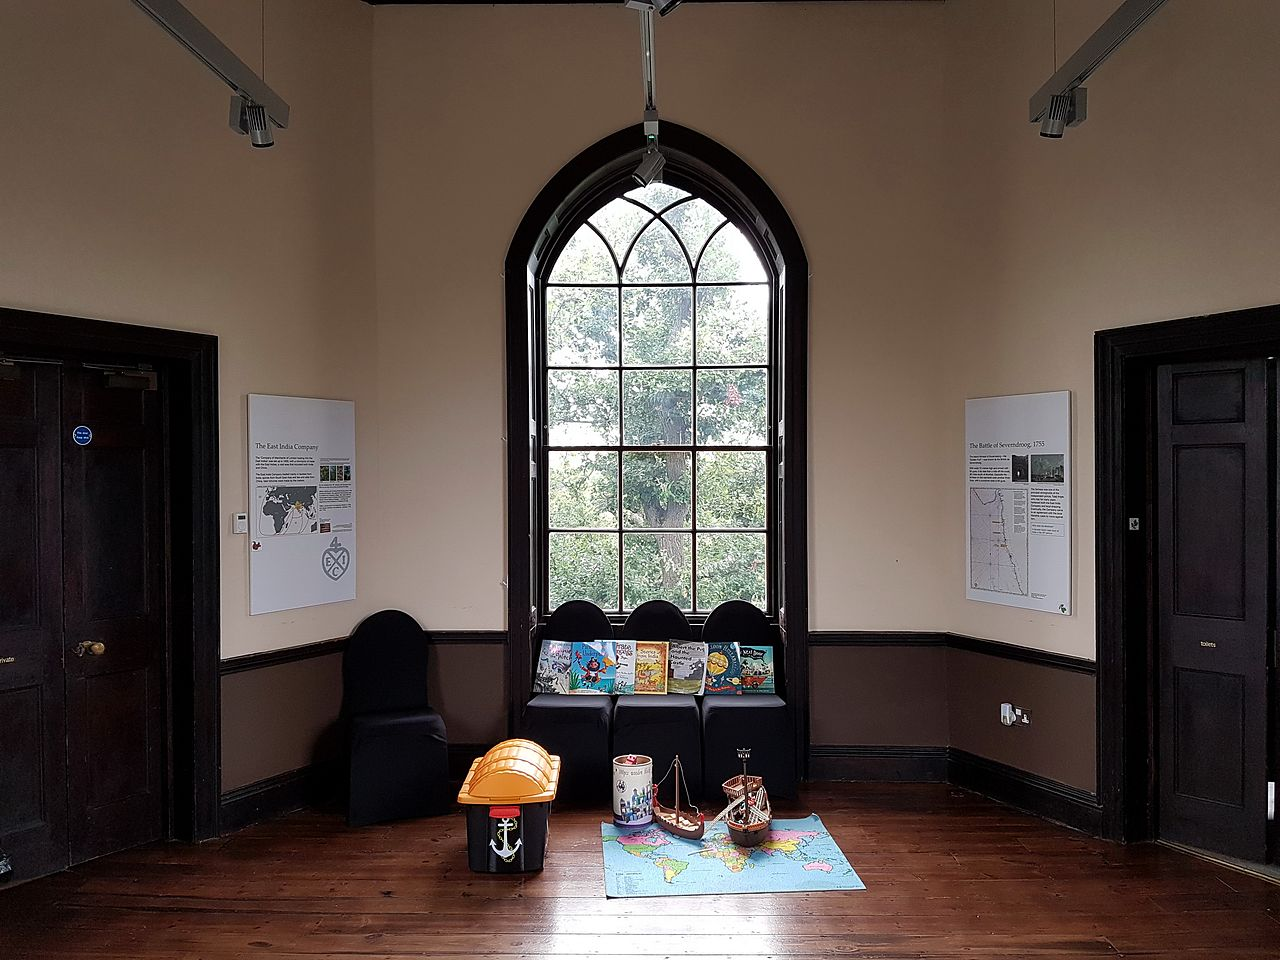 file:2016 severndroog castle, interior 09 - wikimedia commons